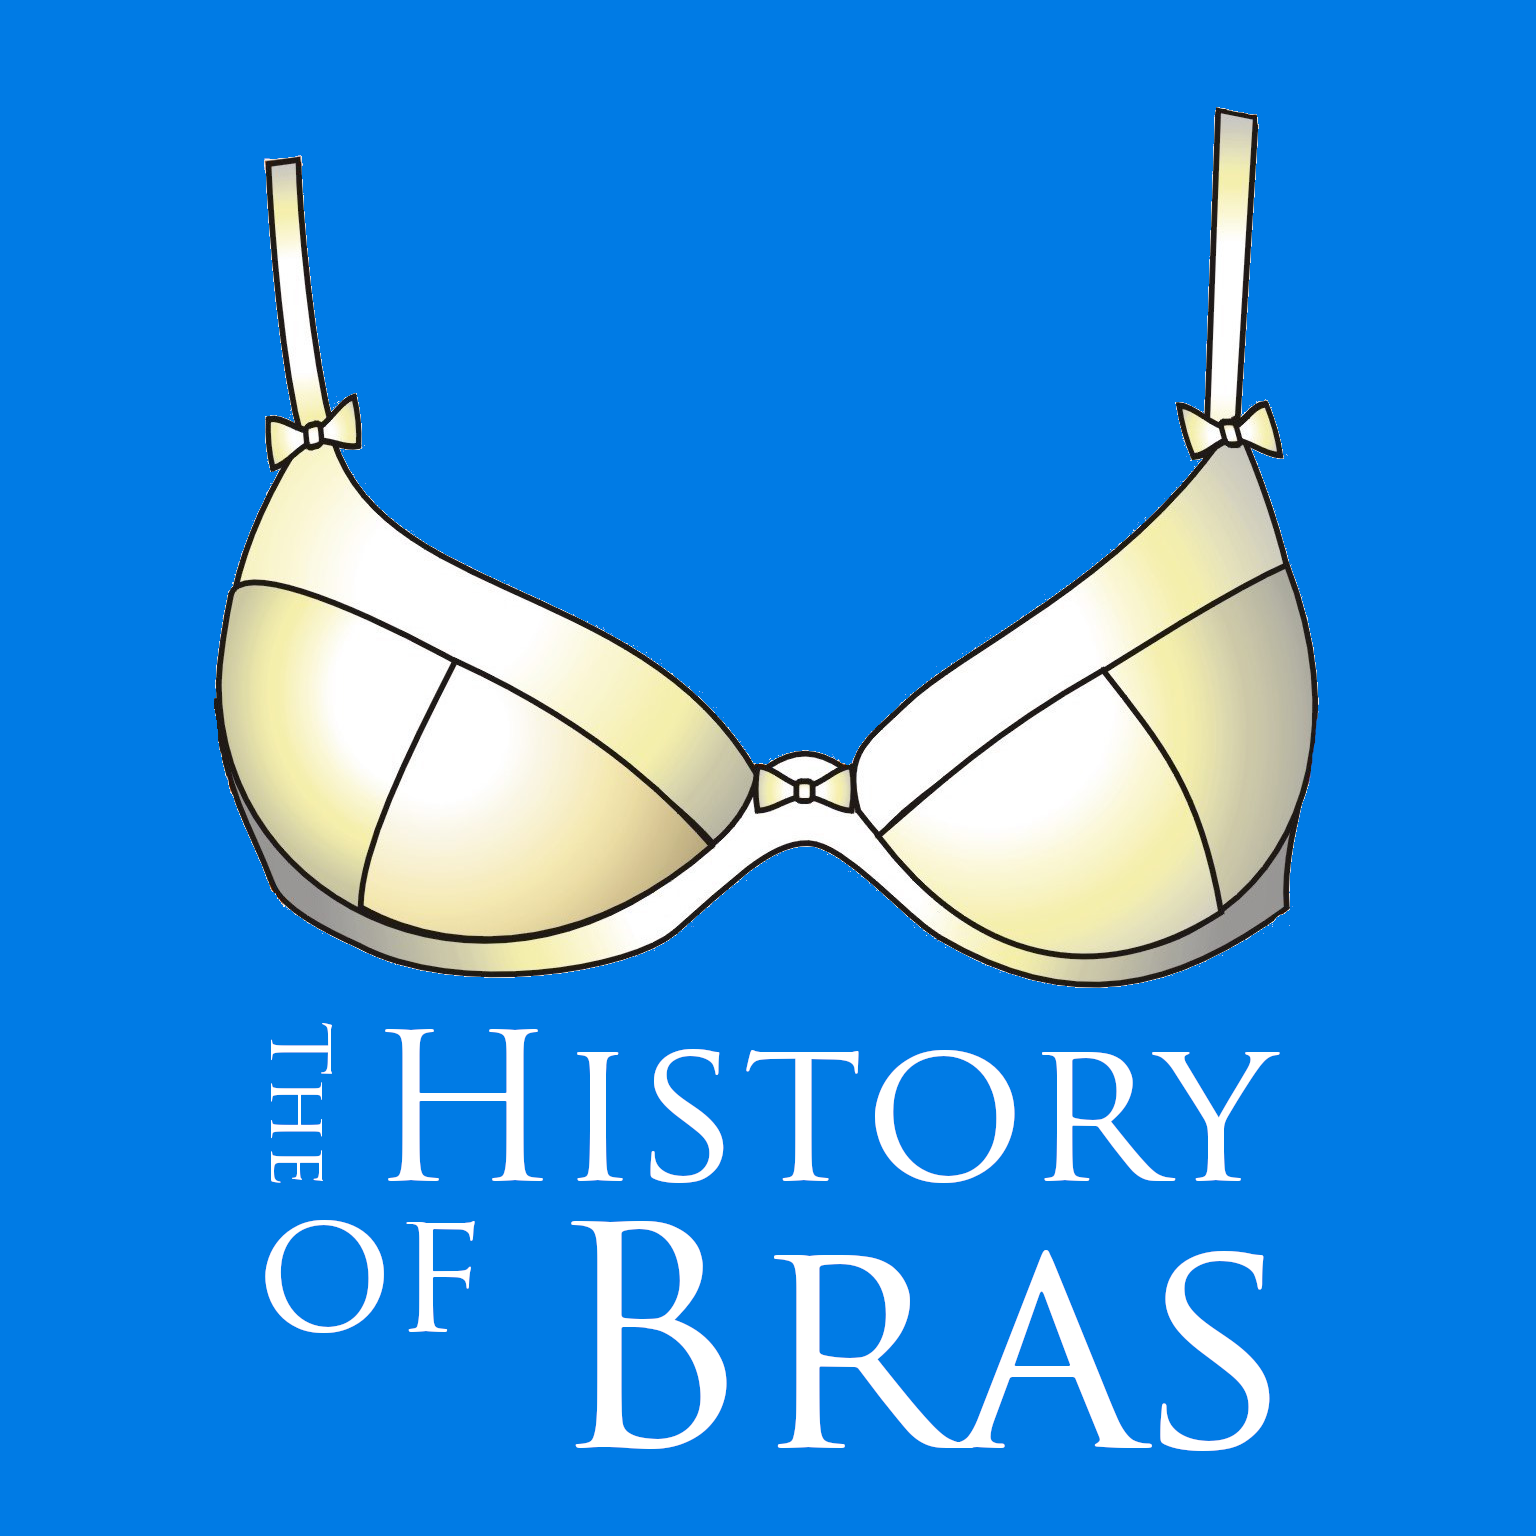 The History of Bras, Feat. The Exploress - Showcase, Women's History